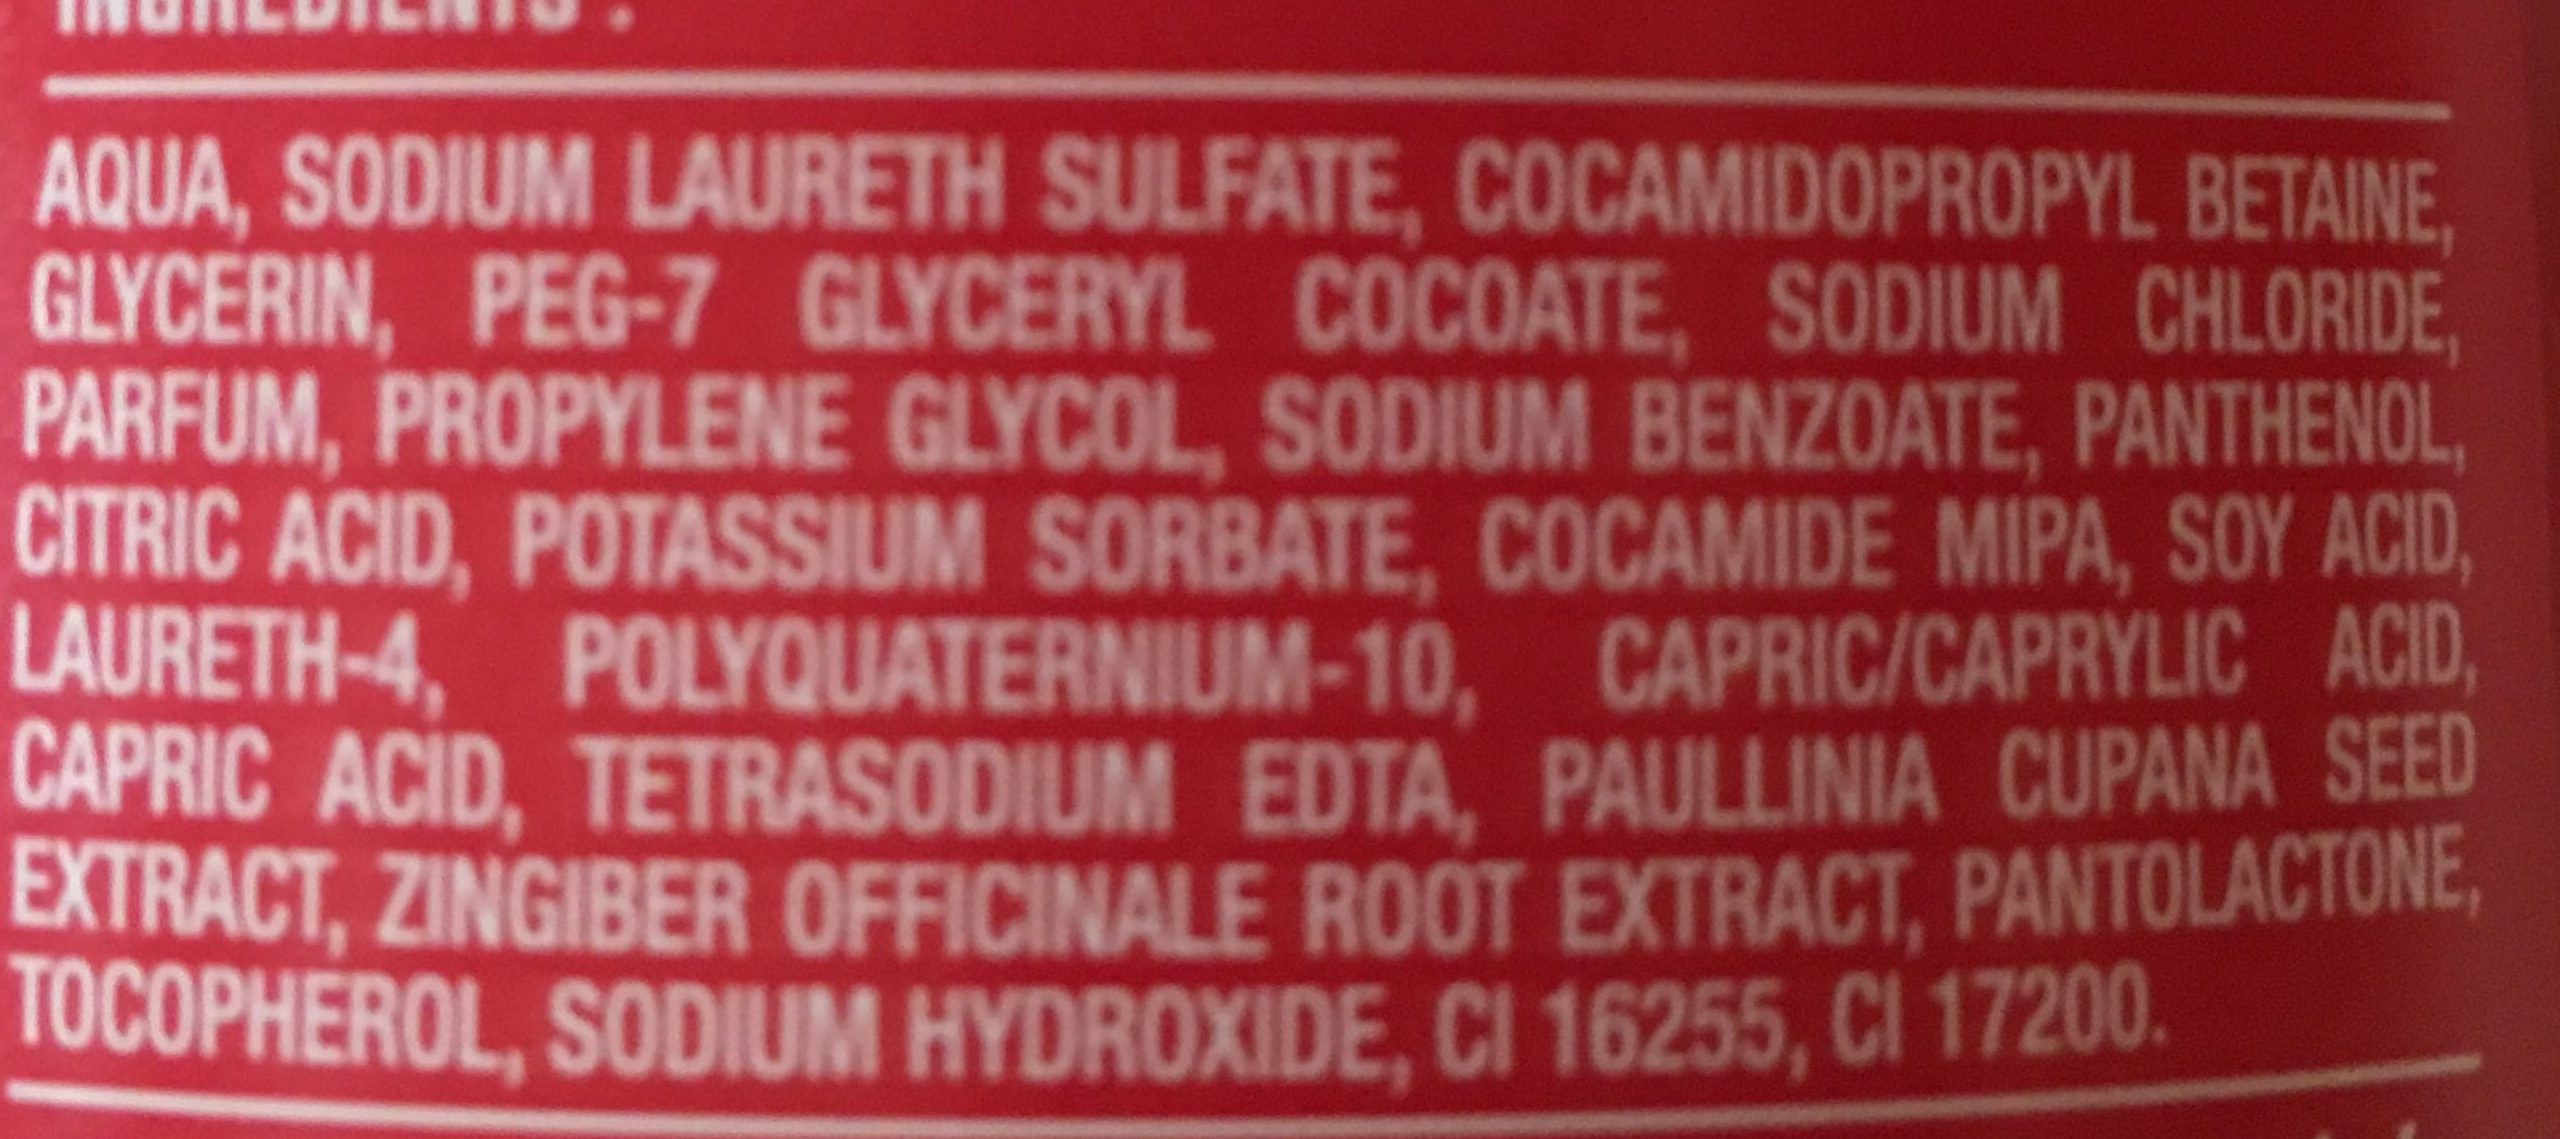 Gel douche Guarana Gingembre - Ingredients